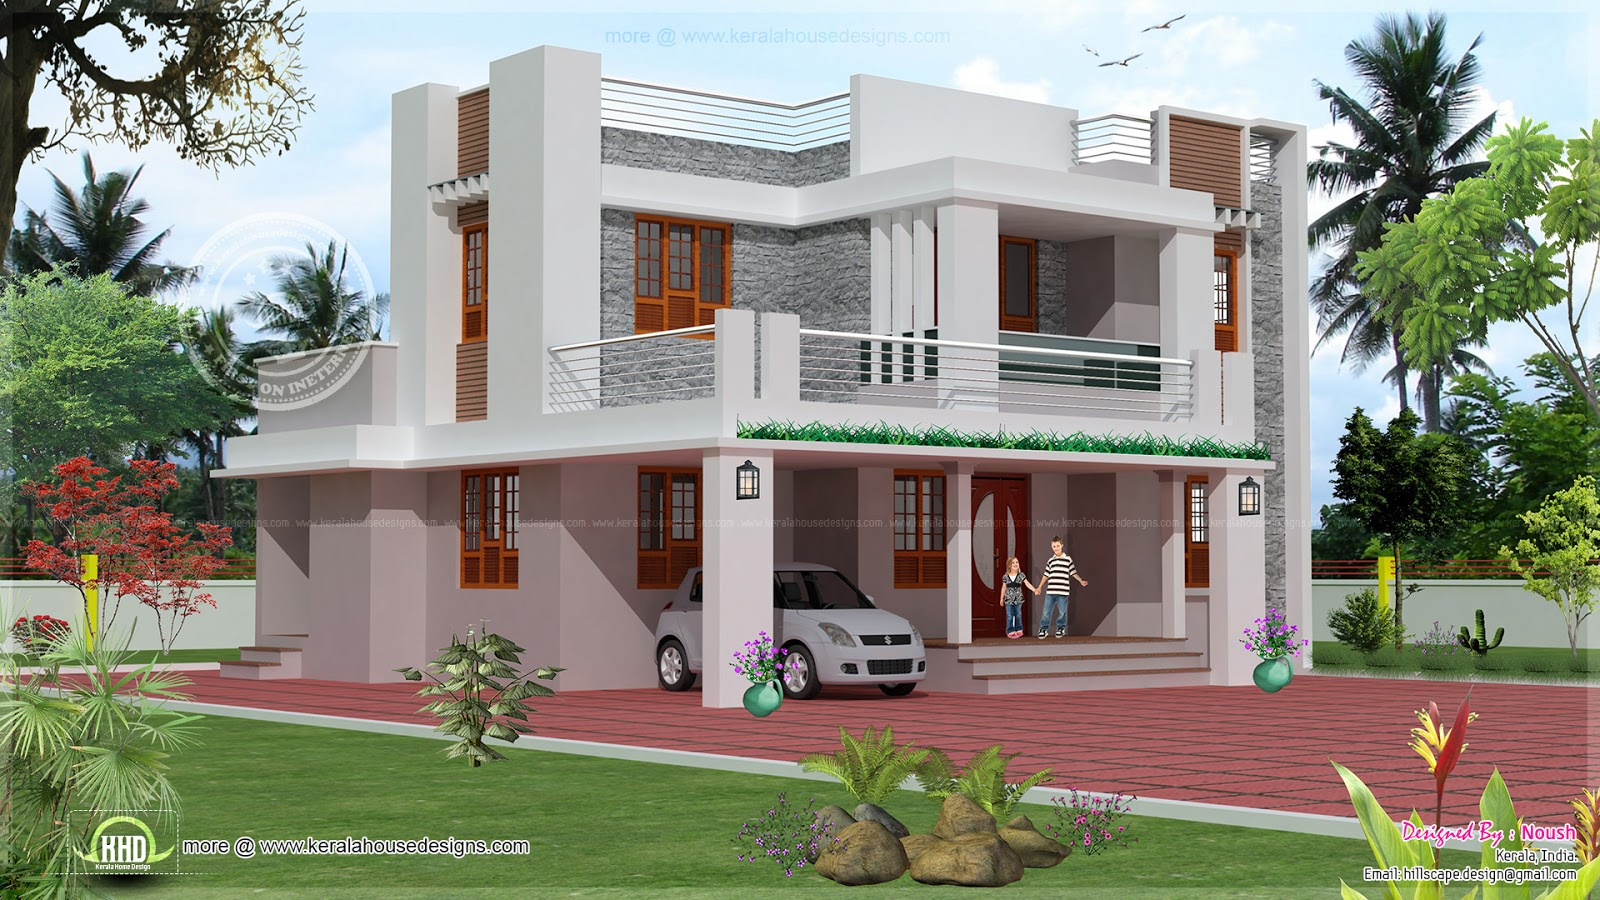 Perfect 2 Story House Exterior Design 1600 x 900 · 418 kB · jpeg